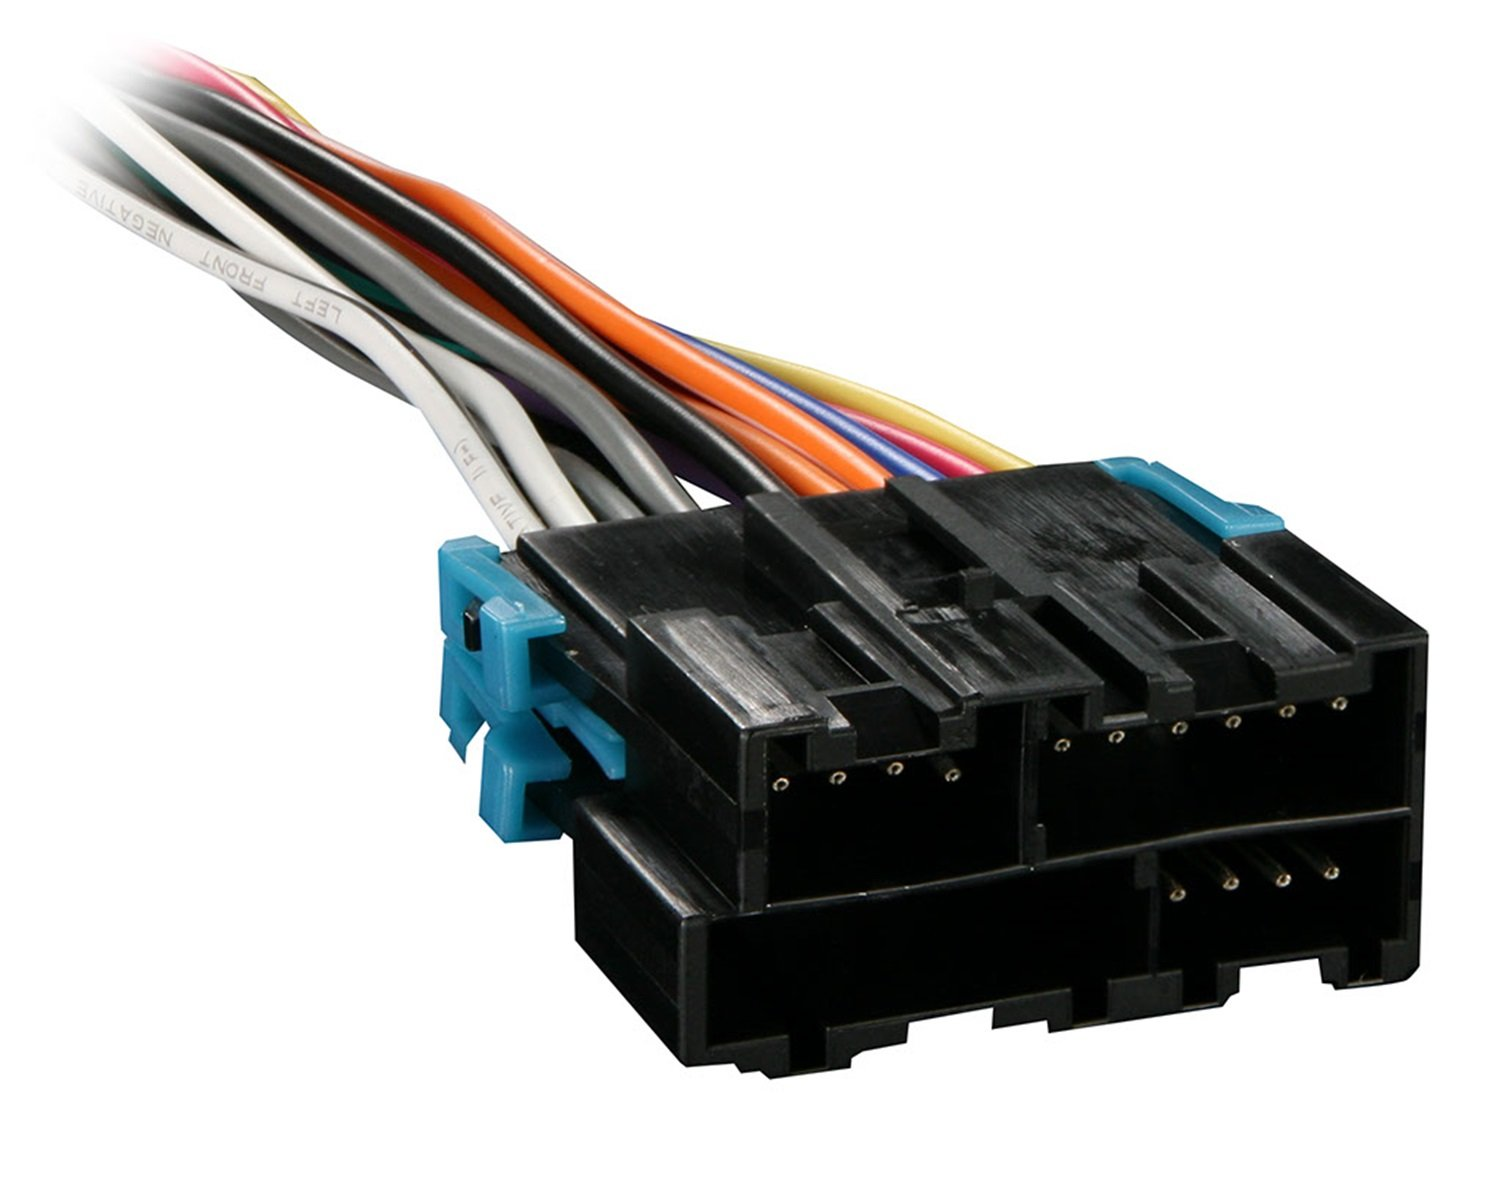 61 CwjZt1hL._SL1500_ radio wiring harnesses amazon com snap on wire harness adapter at gsmportal.co